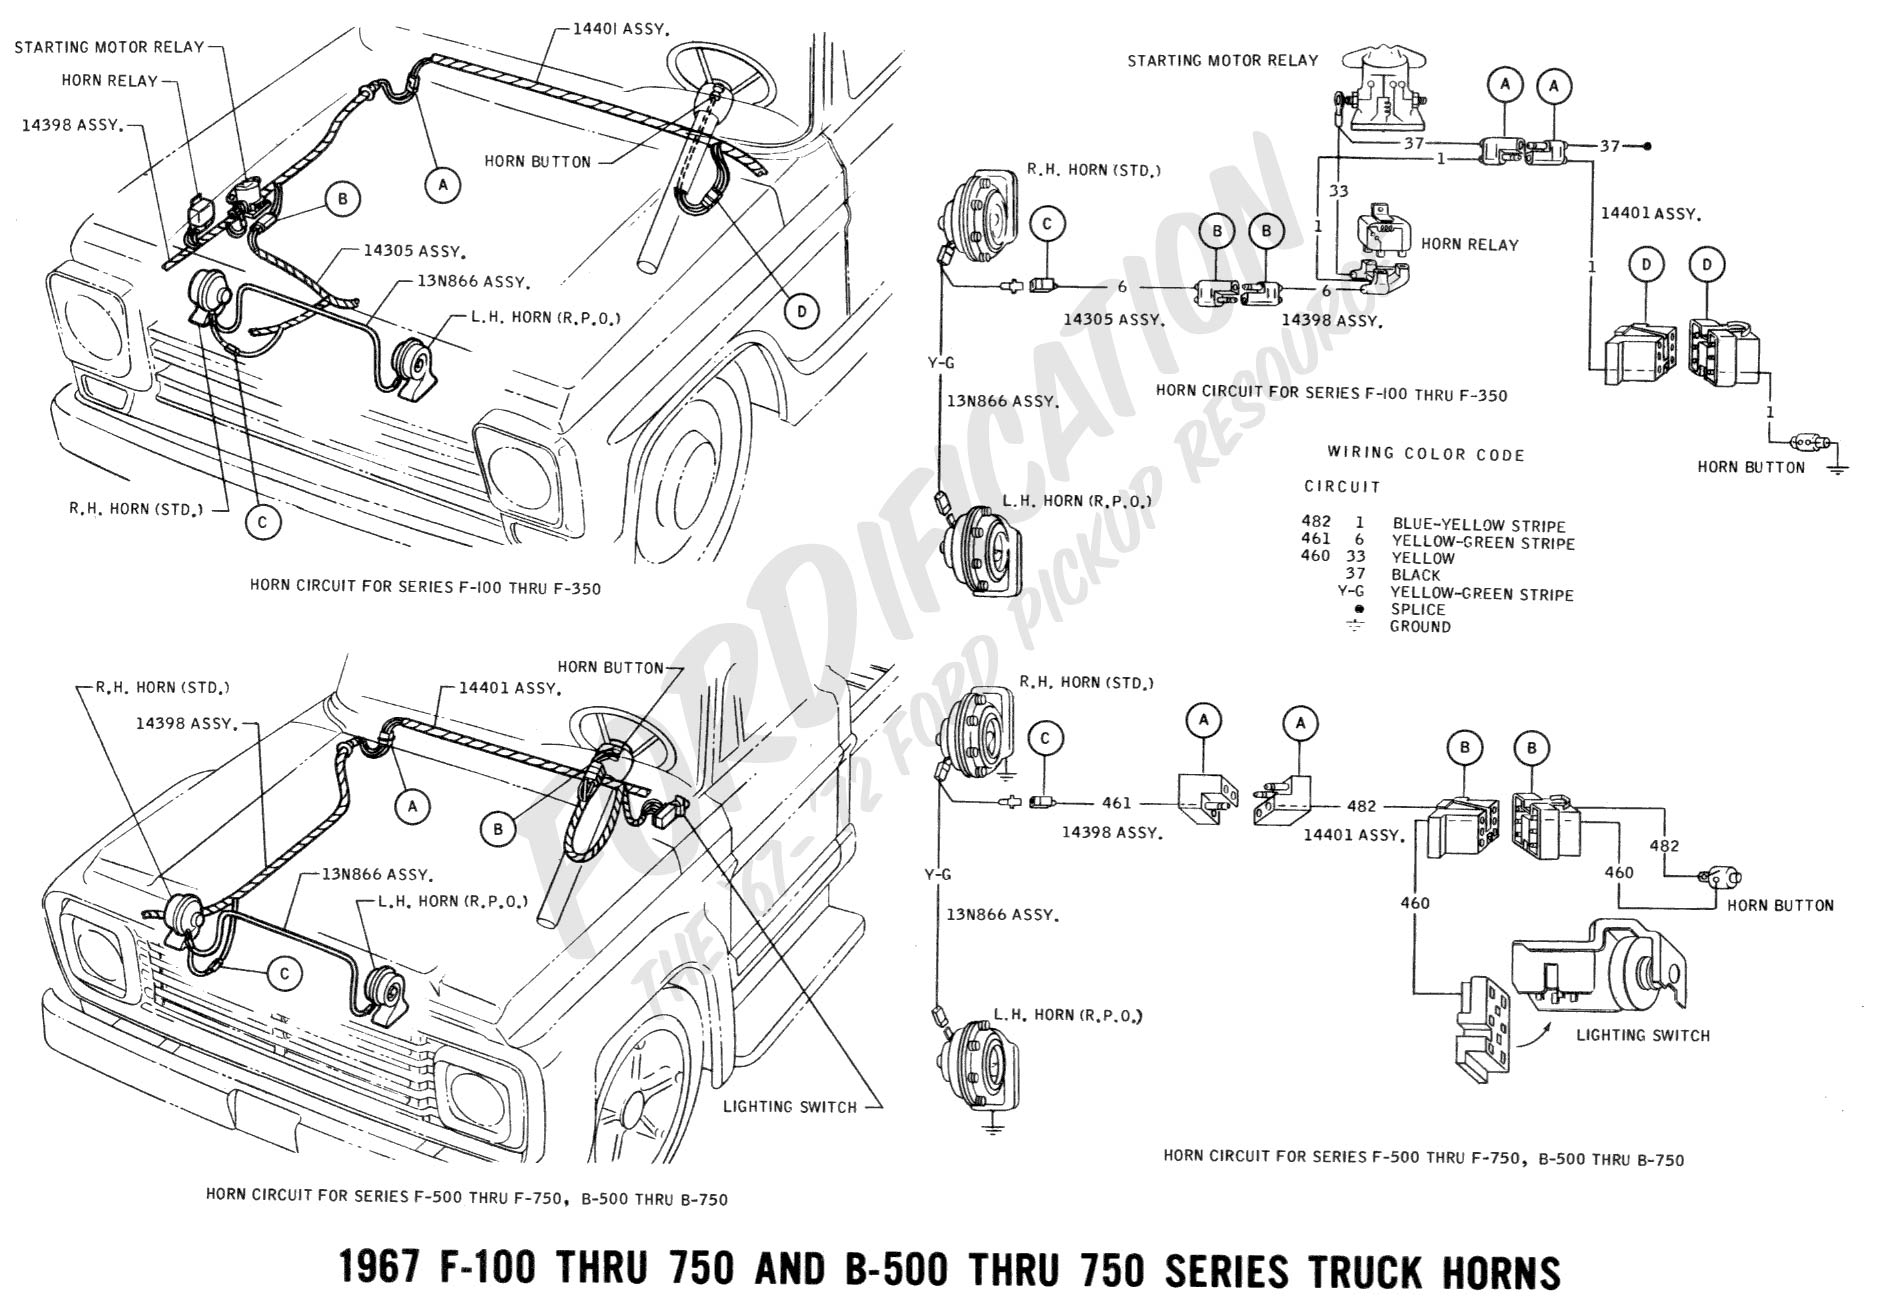 1977 Corvette Turn Signal Diagram All Kind Of Wiring Diagrams Schematic Ford Truck Technical Drawings And Schematics Section H 1955 Chevy Gm